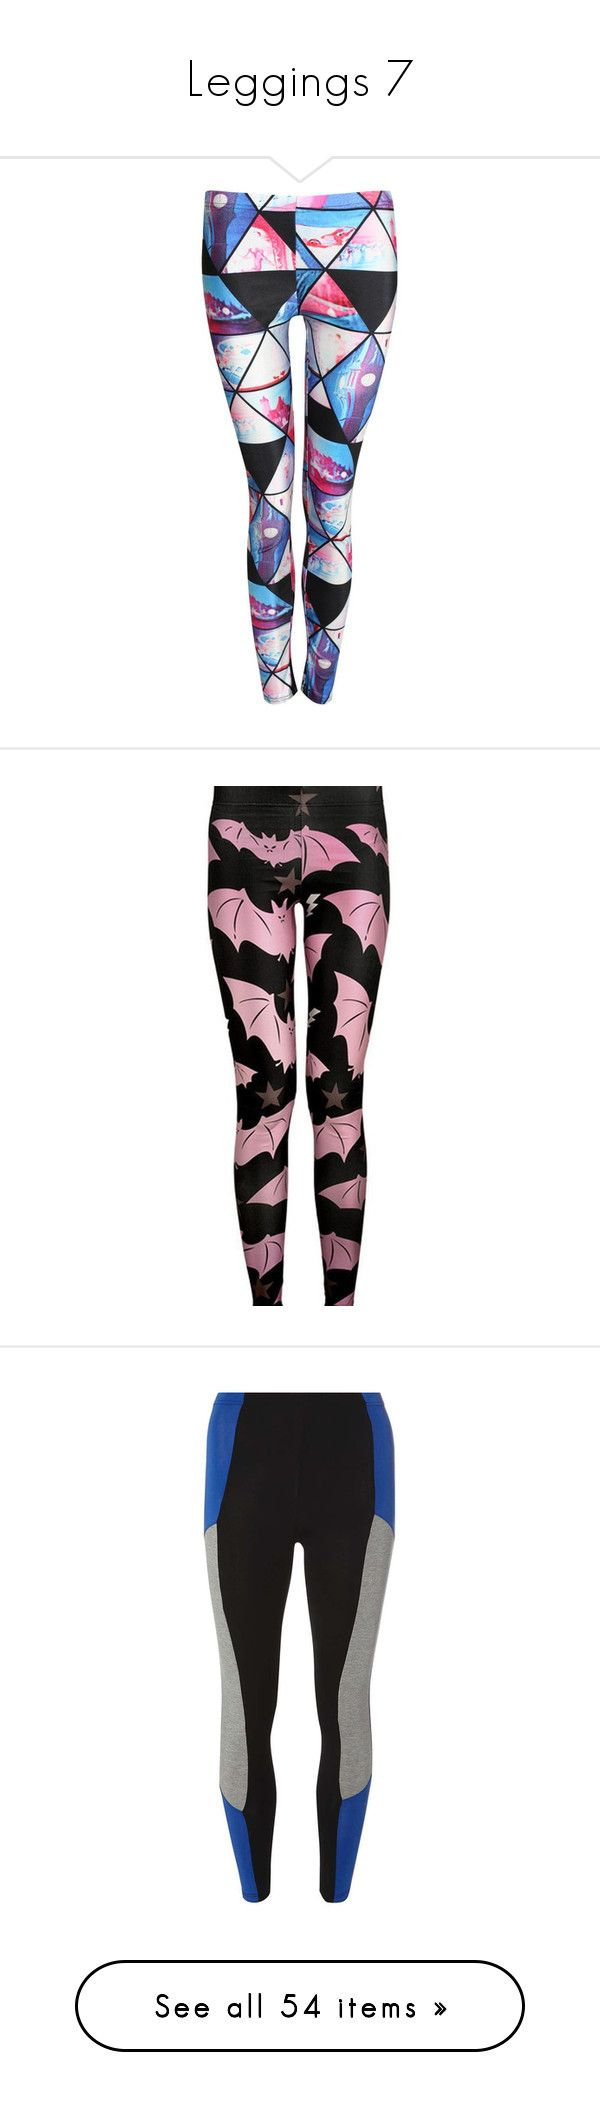 """""""Leggings 7"""" by musicmelody1 ❤ liked on Polyvore featuring pants, leggings, bottoms, jeans, blue, geo print leggings, multi color pants, geometric leggings, multi colored leggings and multi color leggings"""